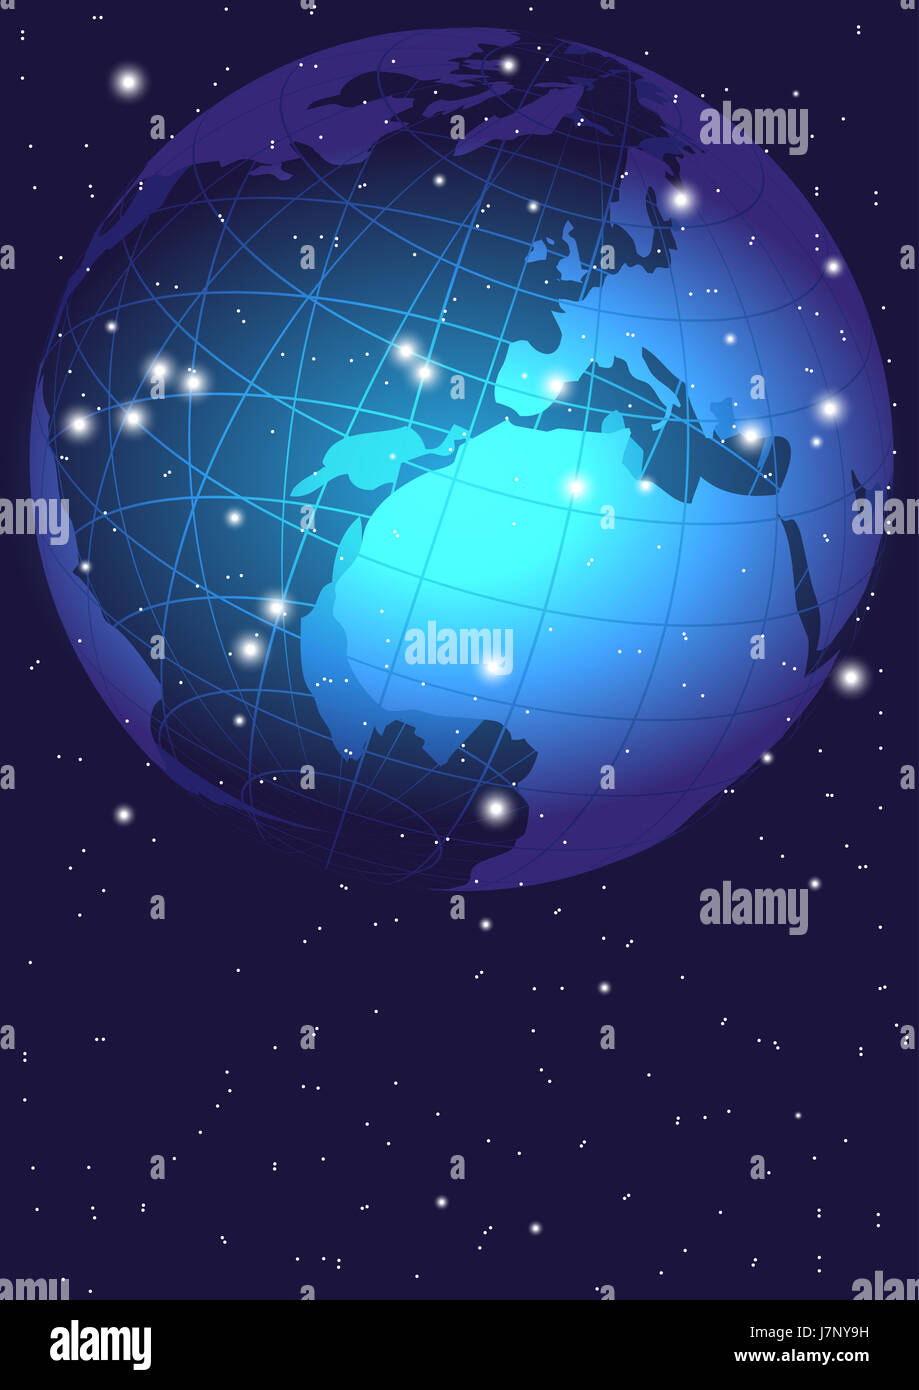 Night nighttime technology globe planet earth world map atlas map night nighttime technology globe planet earth world map atlas map of the world gumiabroncs Choice Image